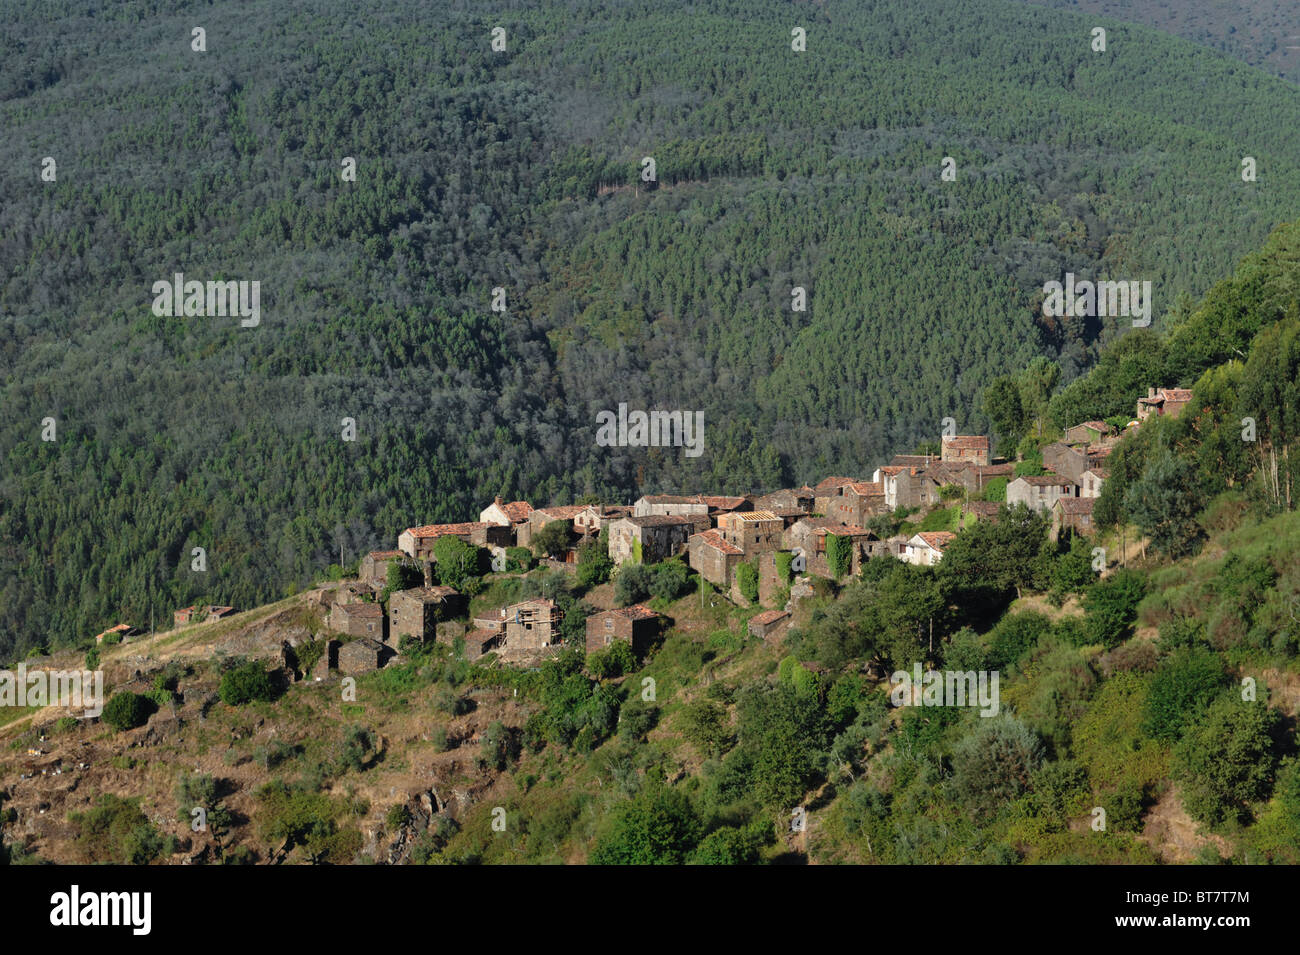 View of isolated village Talasnal in Serra da Lousã, central Portugal - Stock Image